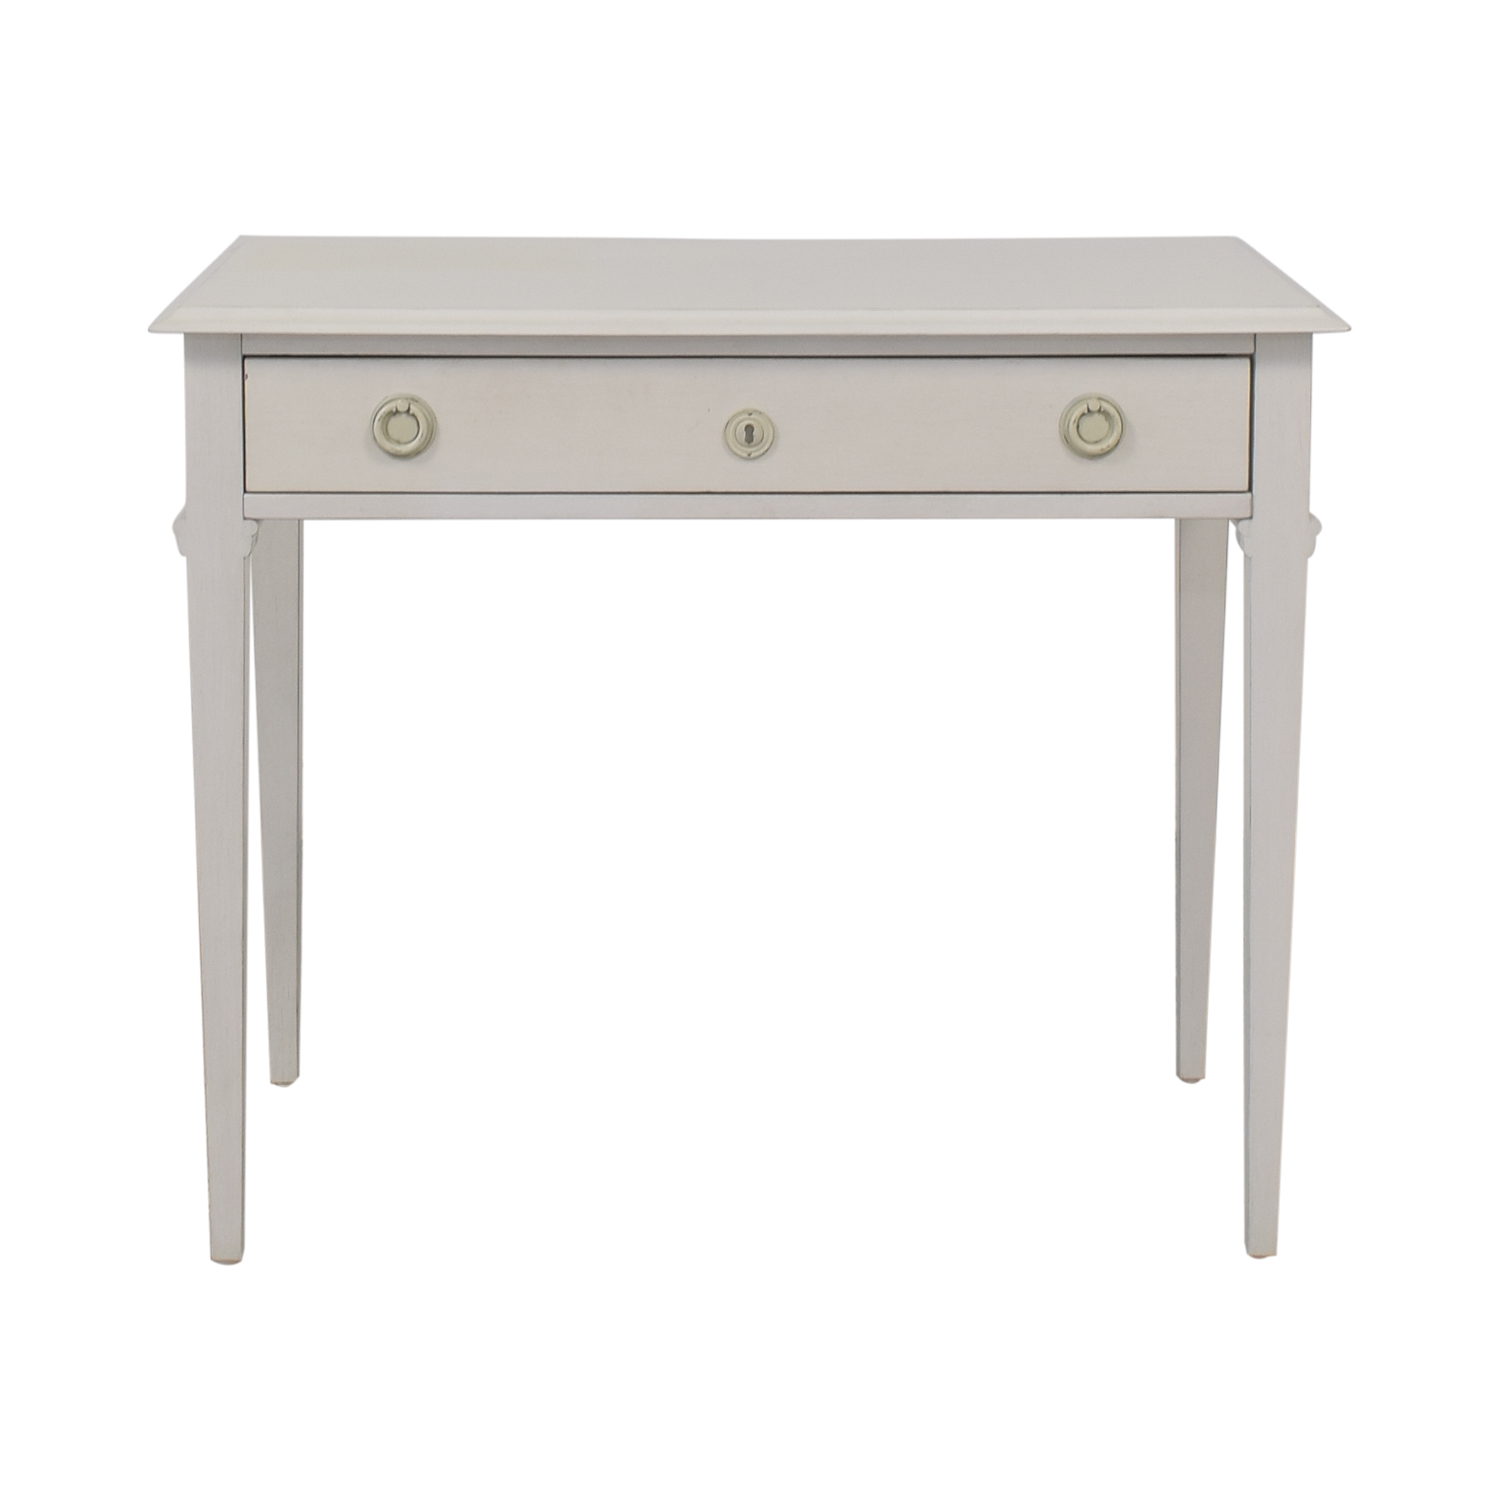 Restoration Hardware Restoration Hardware Writing Table on sale